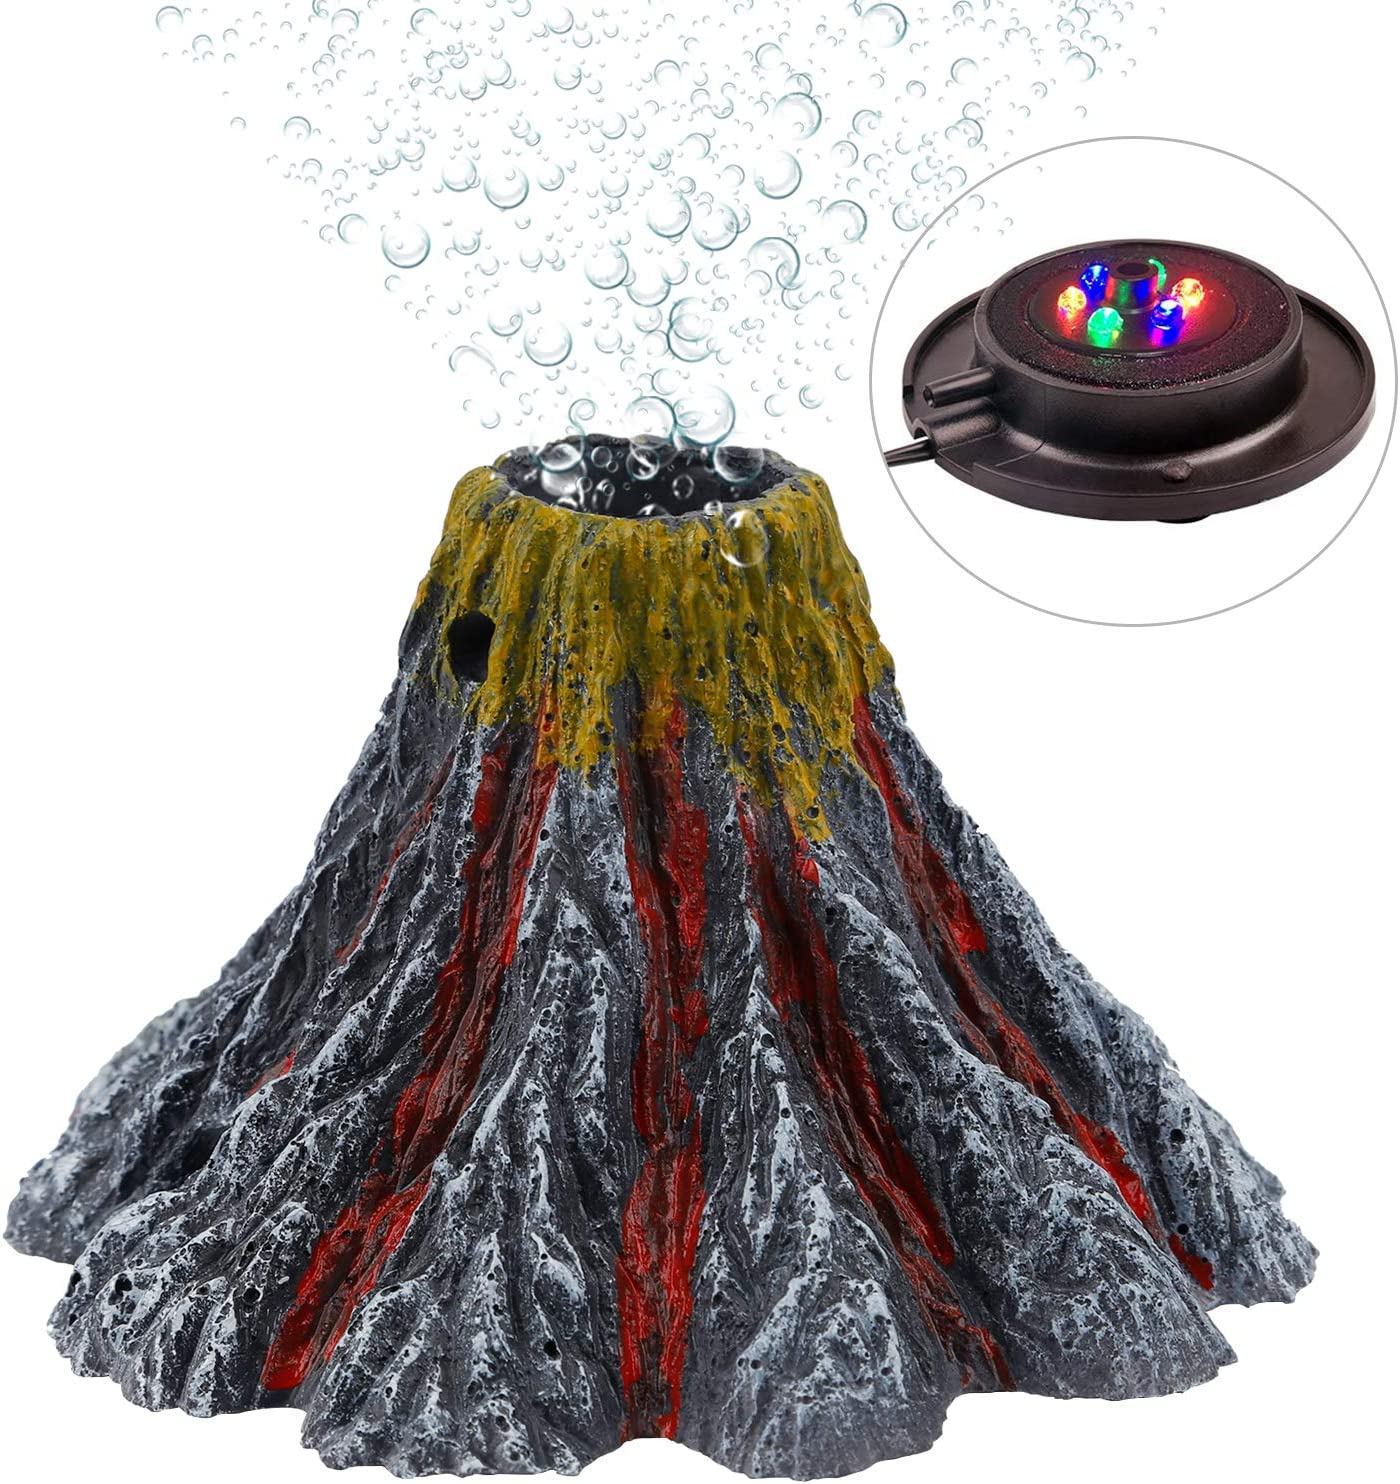 Uniclife Aquarium Decorations Volcano Ornament with LED Light Air Bubbler Stone Kit, Air Pump Not Included